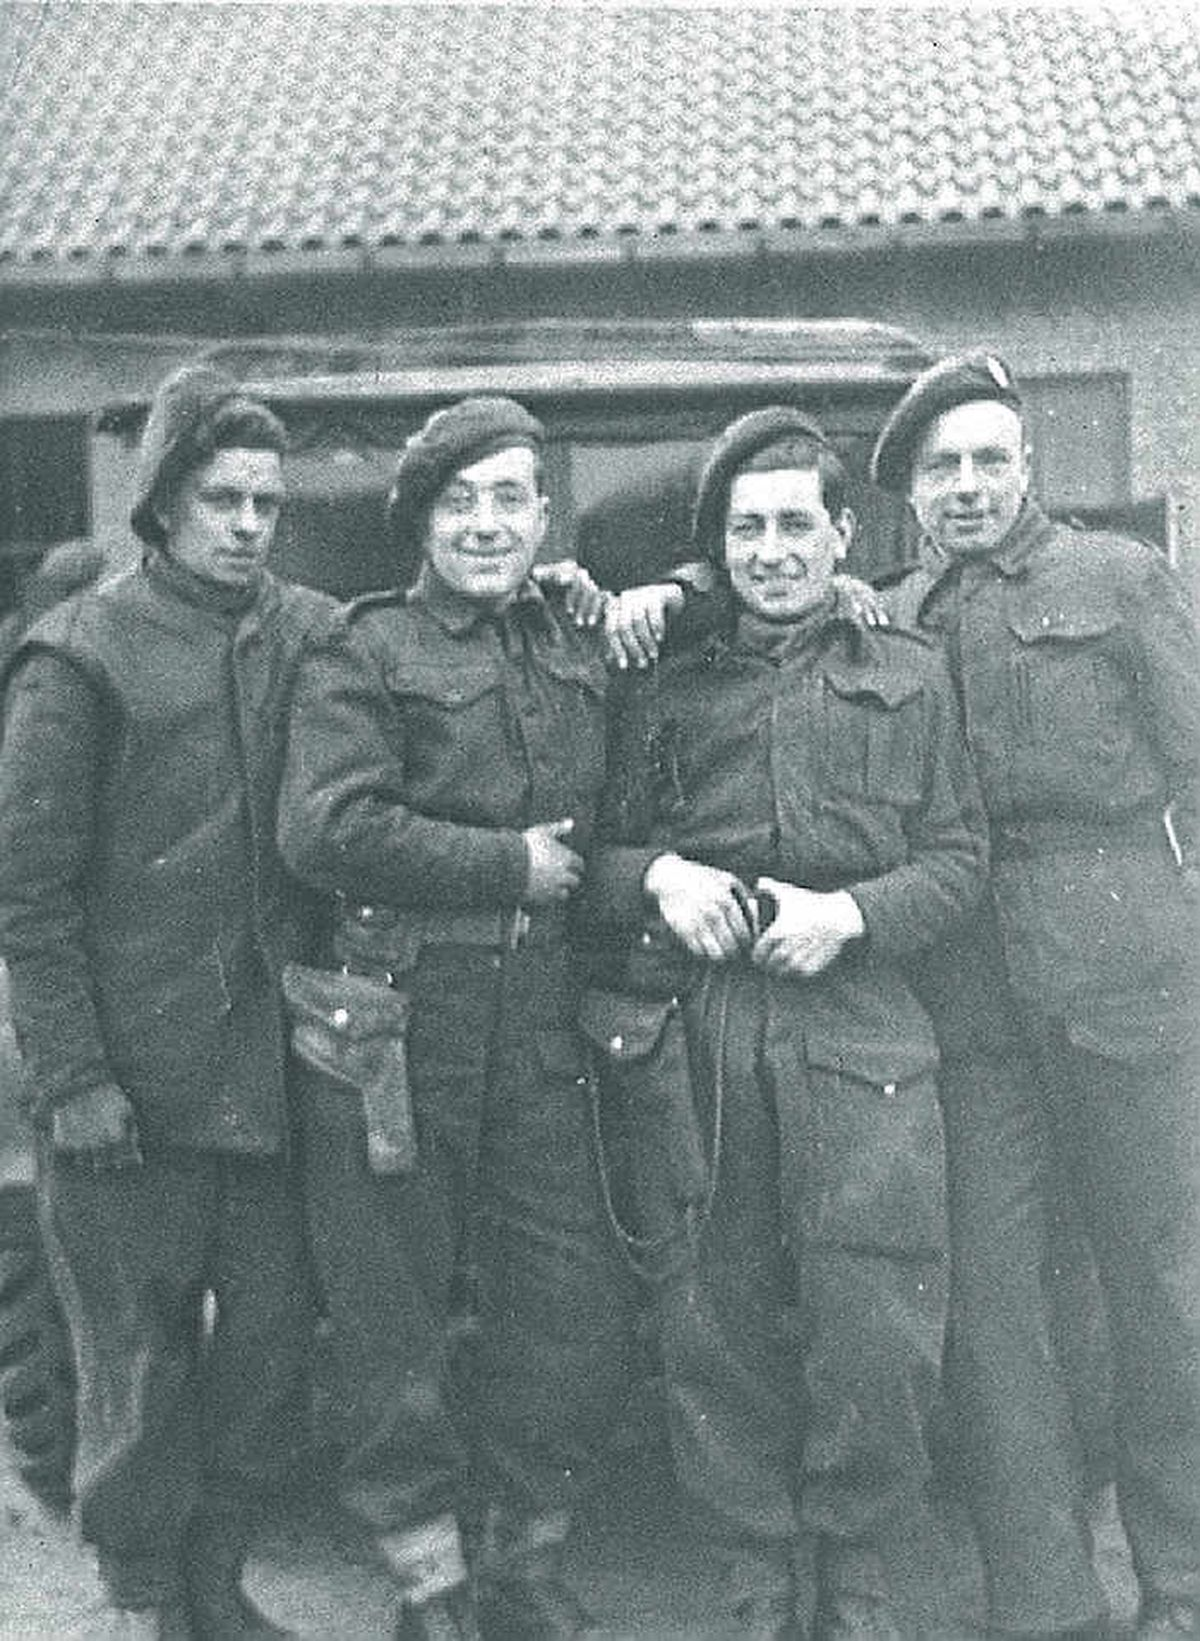 Fred Williams, second from right,  in Normandy in 1944